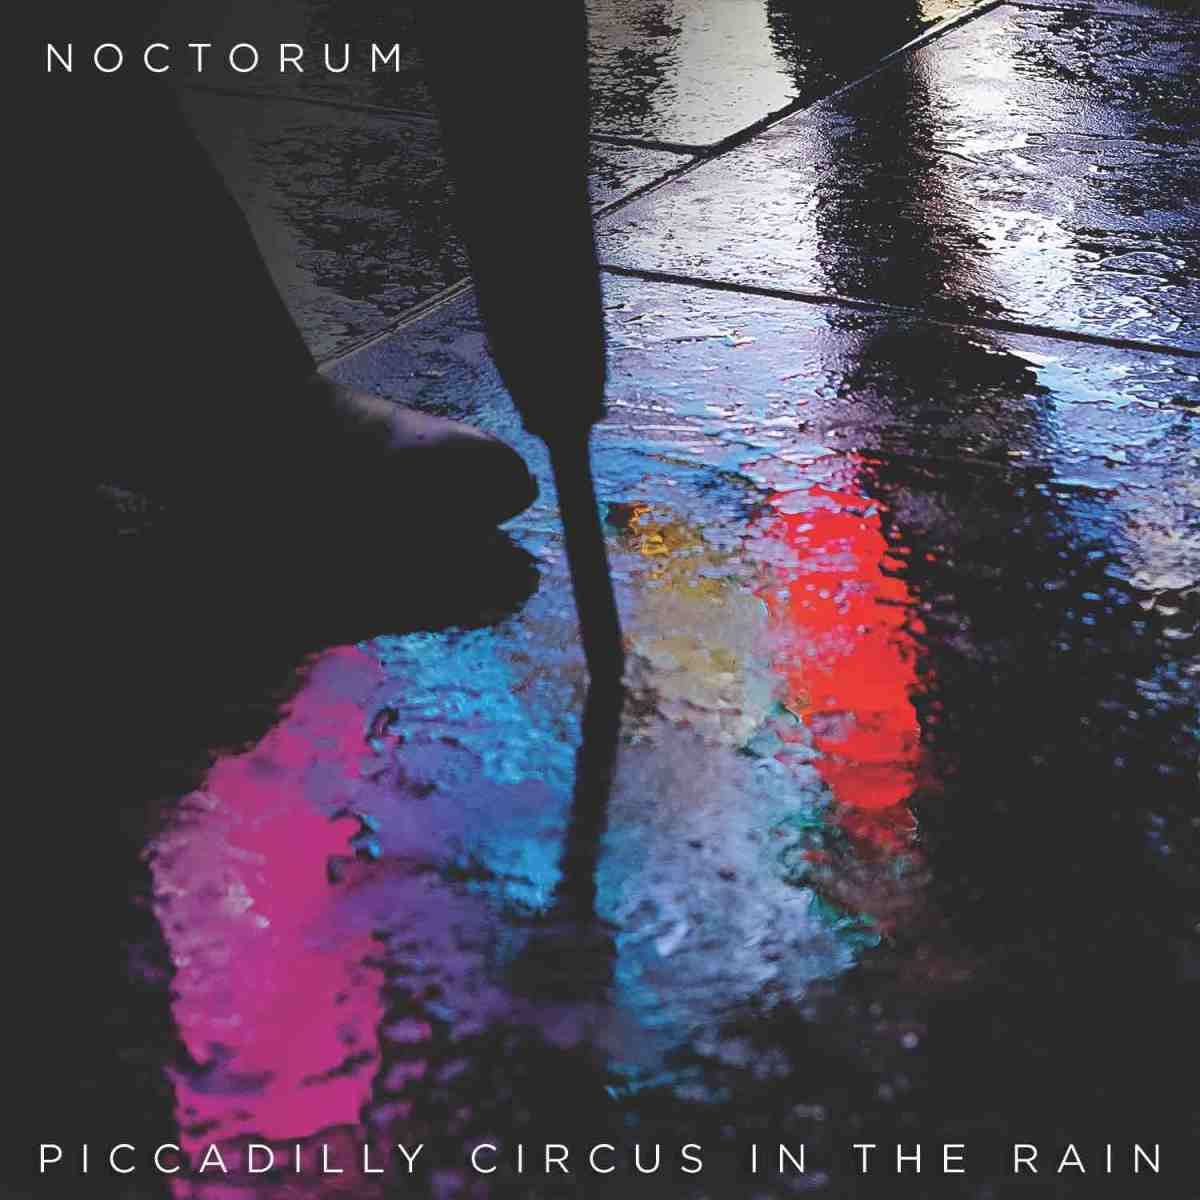 Piccadilly Circus in The Rain - Noctorum (reviewed by Dave Franklin)